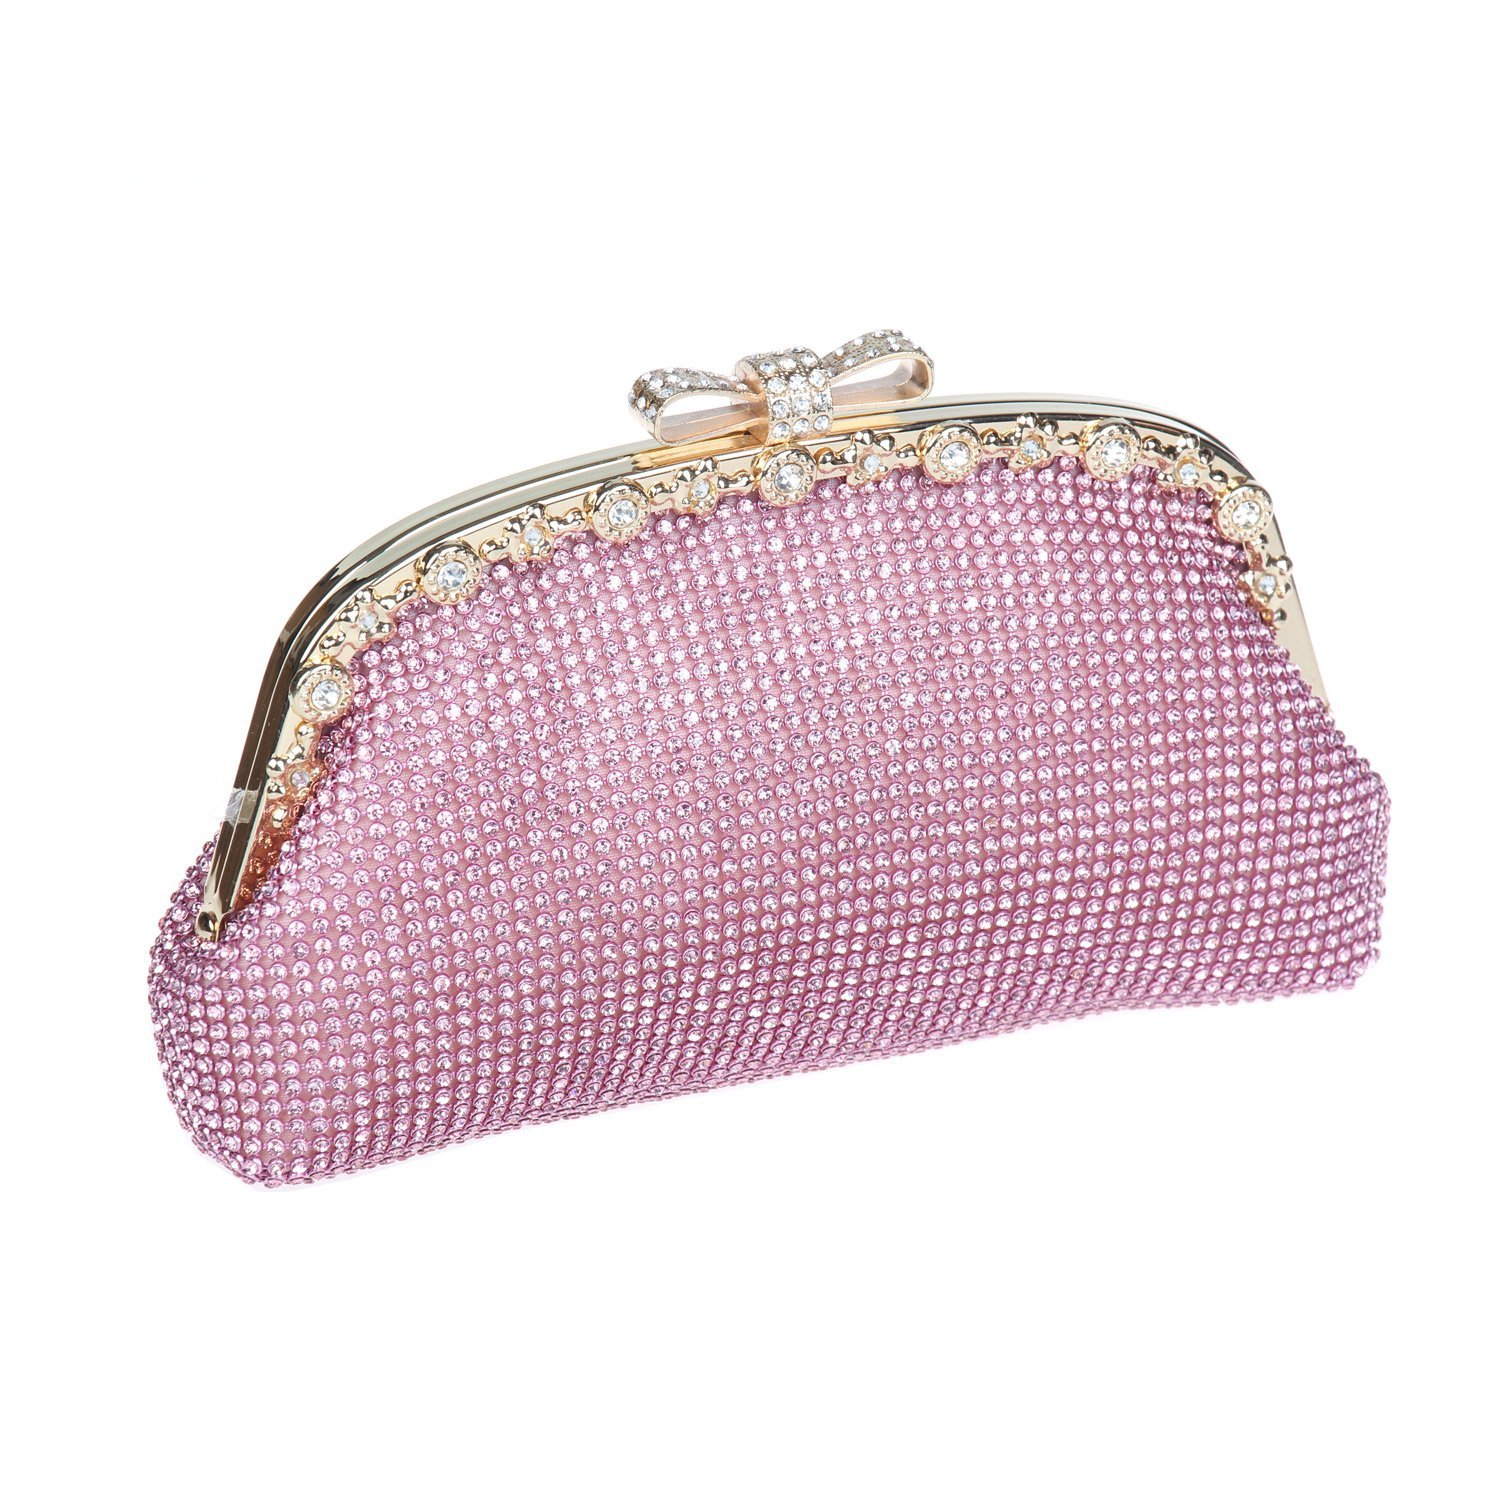 Pink Ustylish Crystal Party Prom Clutch Purse Bag in 8 colors